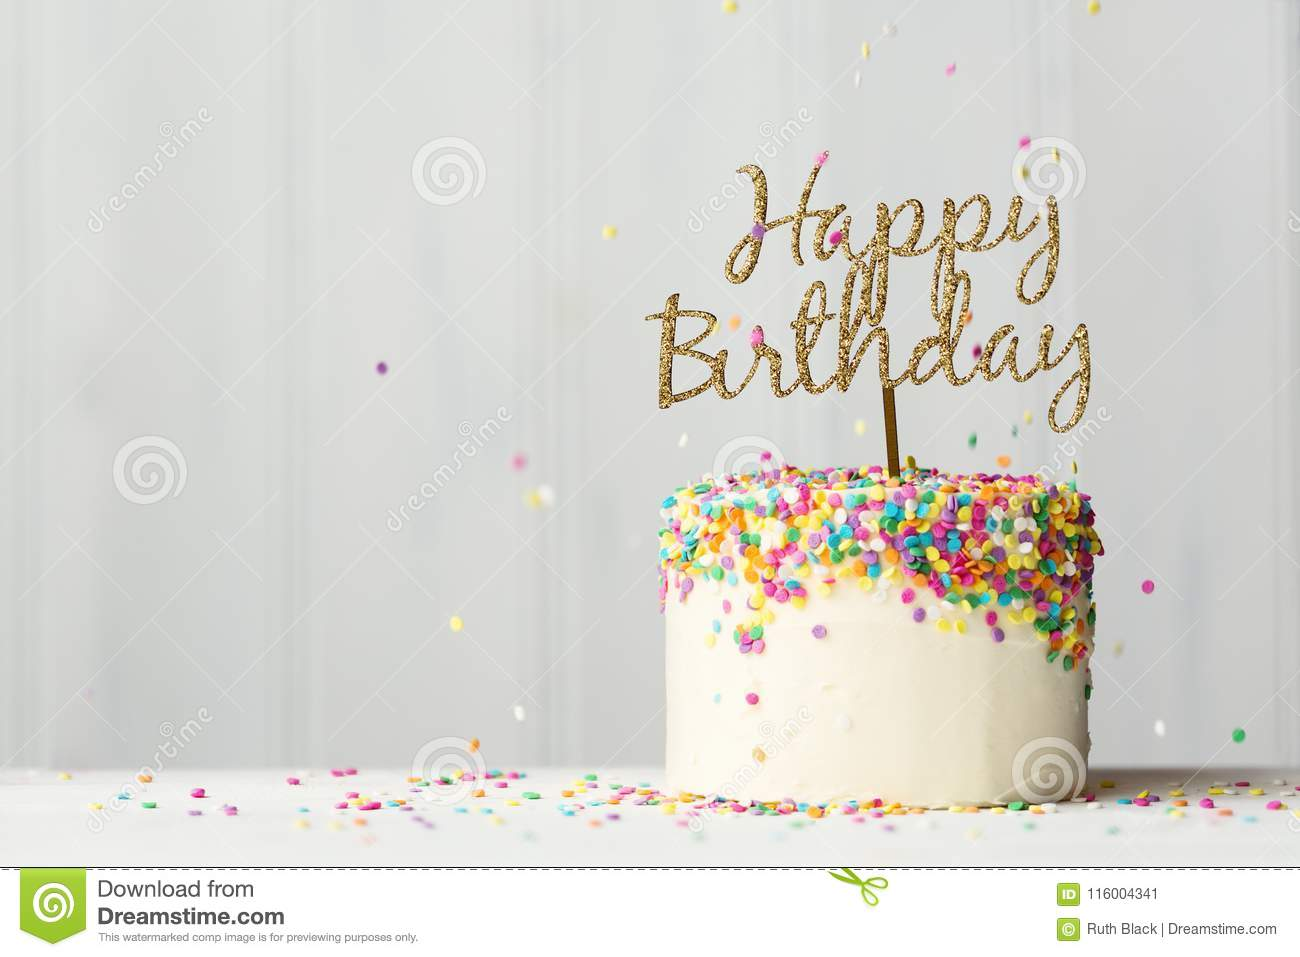 Birthday Cake With Gold Banner Stock Image Image Of Confetti Frosting 116004341